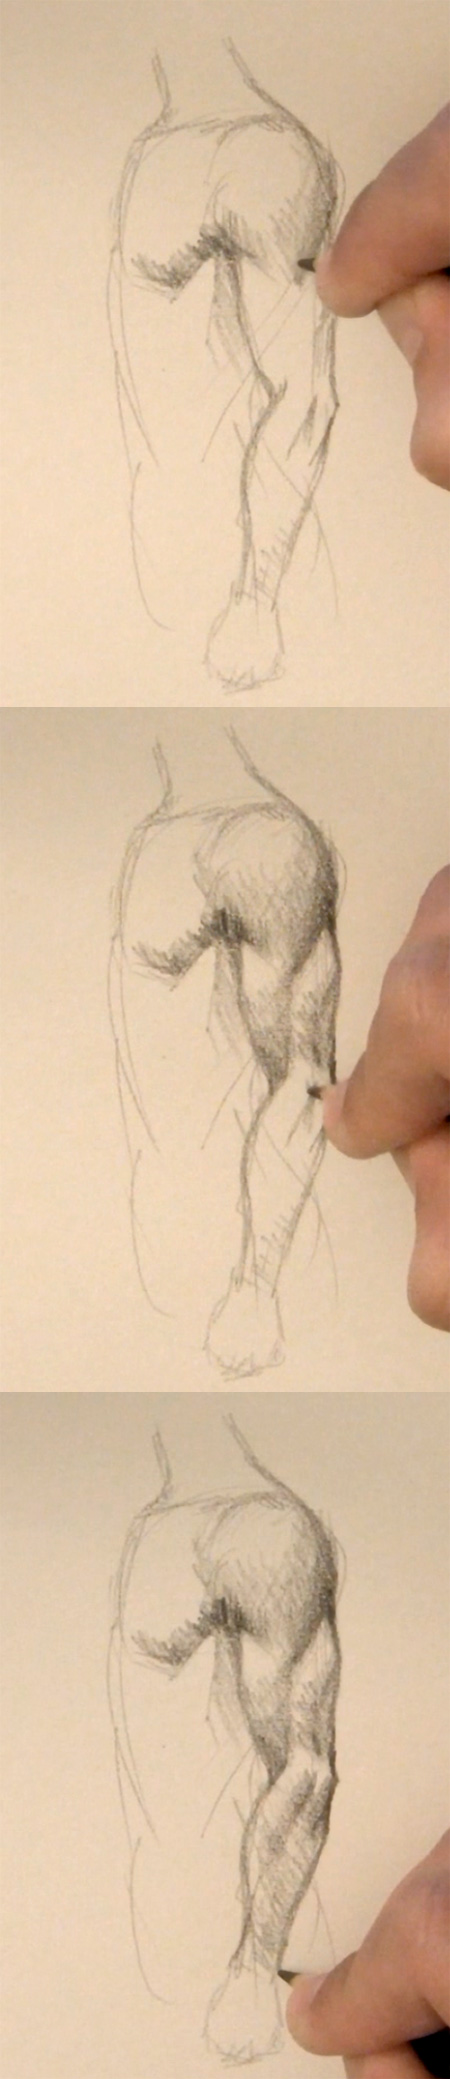 drawing arm muscles side Draw arm muscles side view